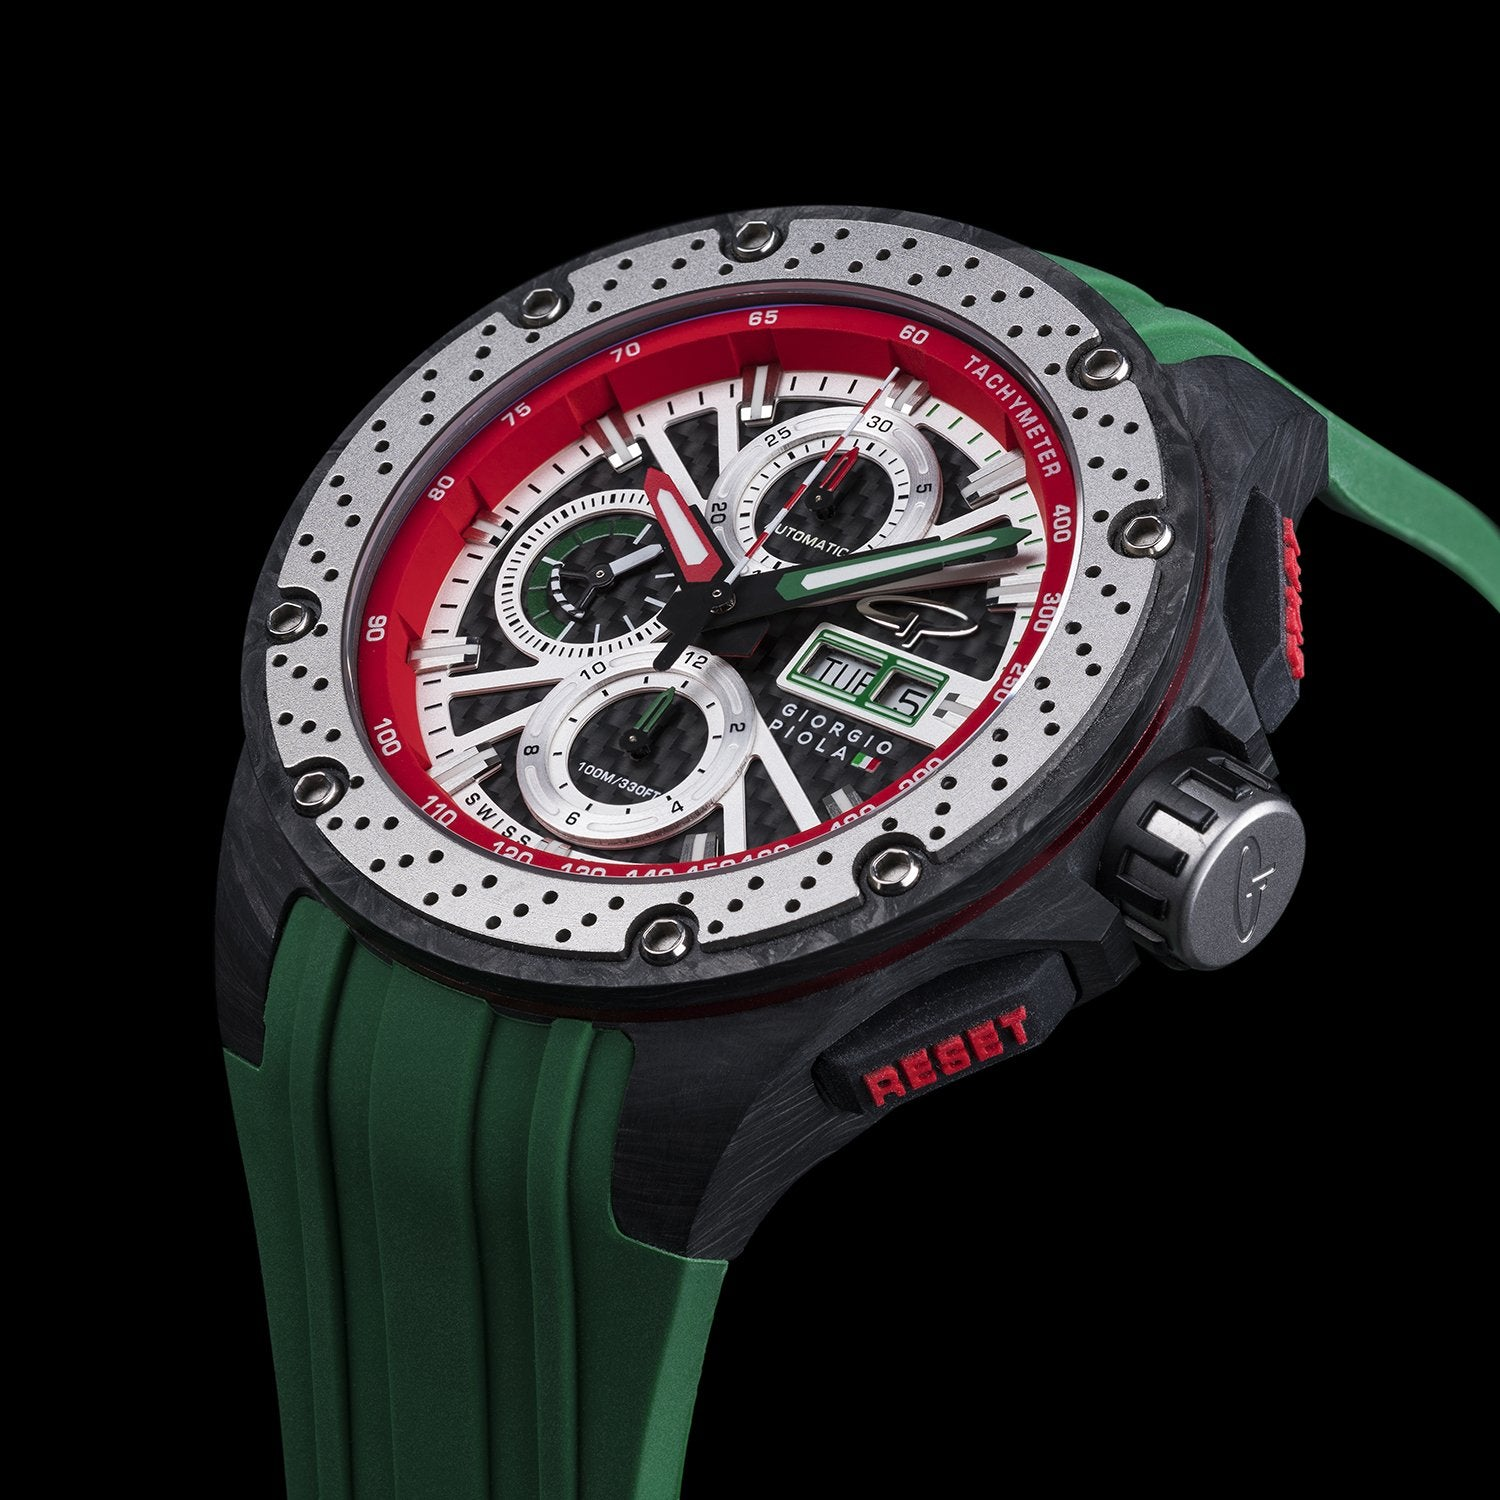 Motorsport Watches. Giorgio Piola Green Chronograph